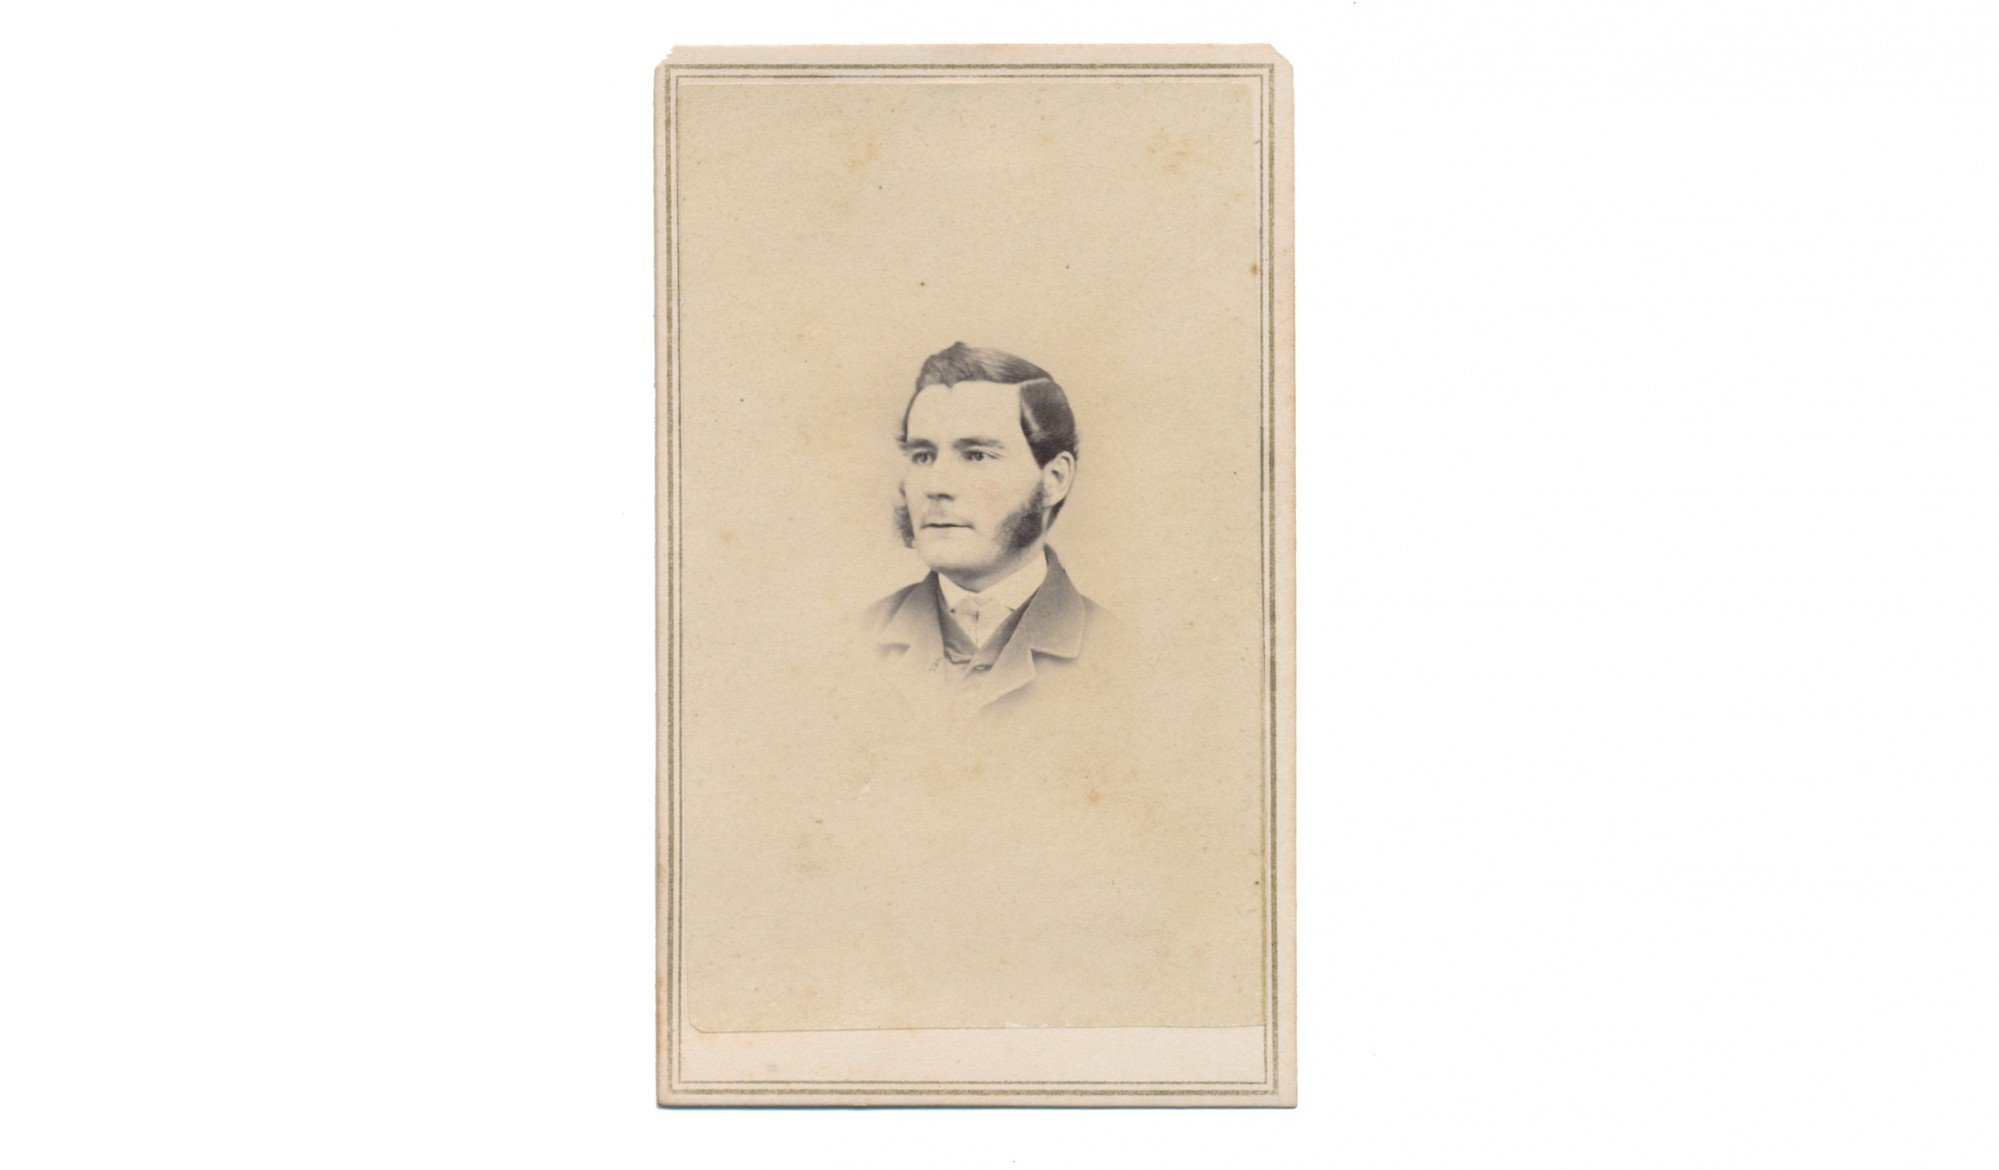 CDV BUST VIEW OF 11TH VERMONT SOLDIER WOUNDED AT WELDON RAILROAD